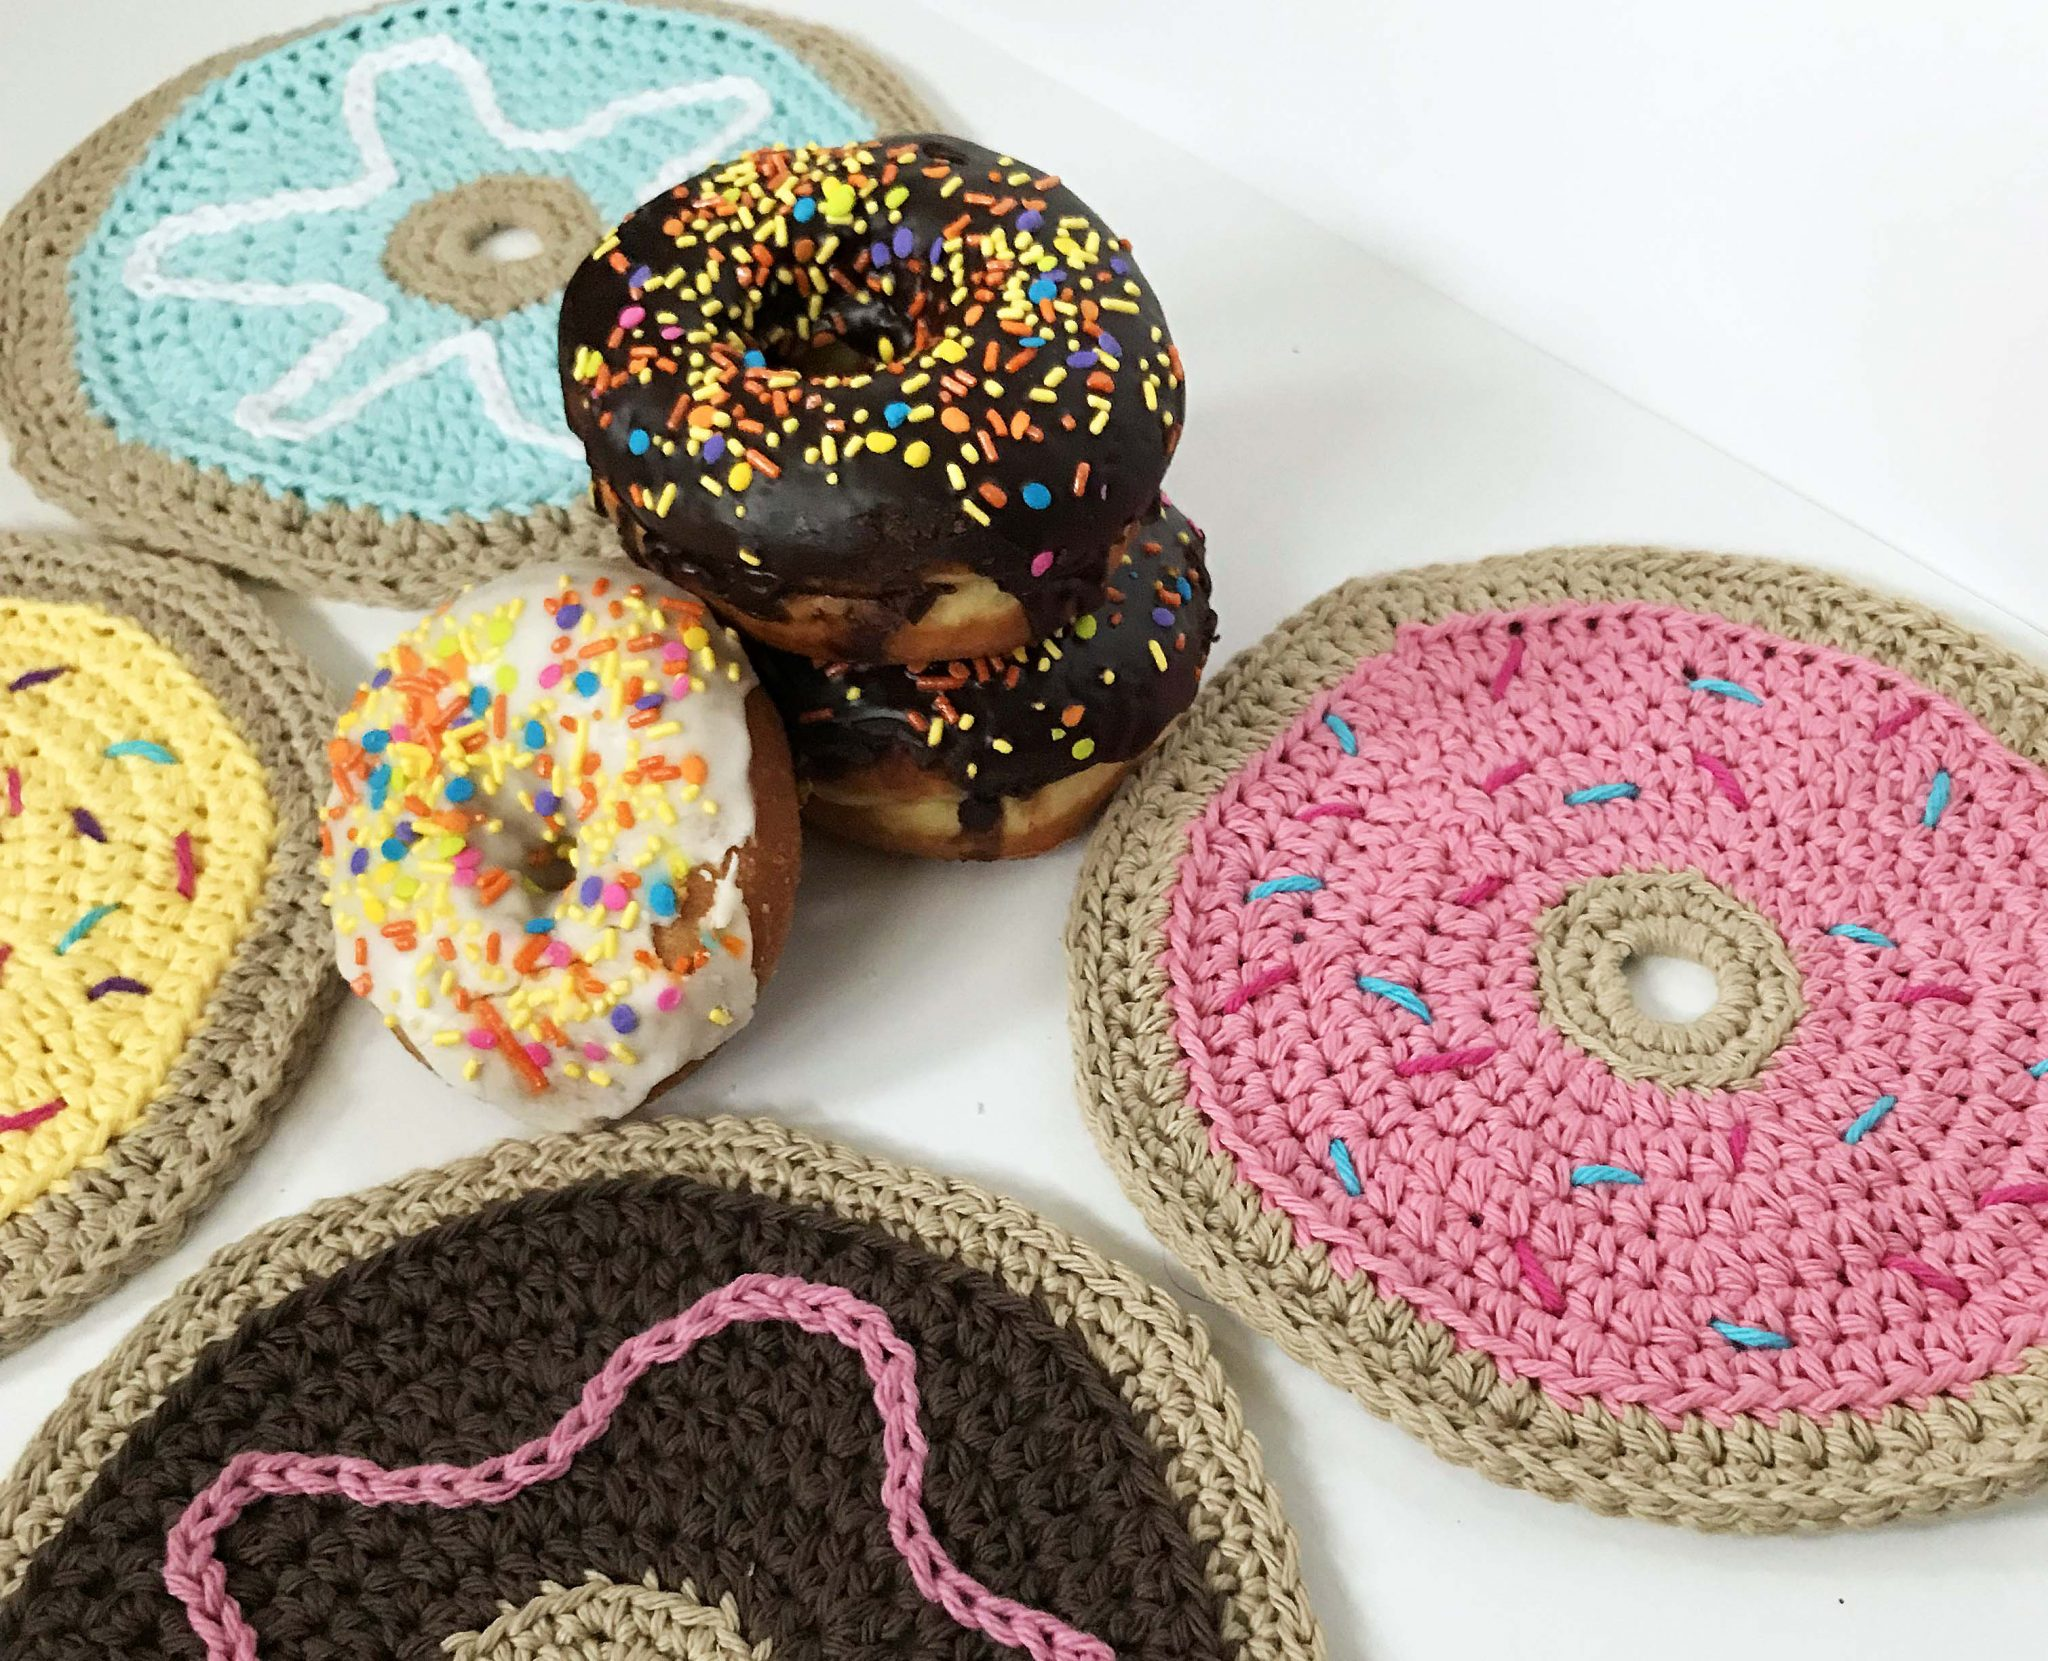 Donut Dish Cloth - Free Crochet Pattern - Crochet Dishcloth - Dishcloth Pattern - Free Dish Cloth Pattern - Donut Wash Cloth - www.greenfoxfarmsdesigns.com